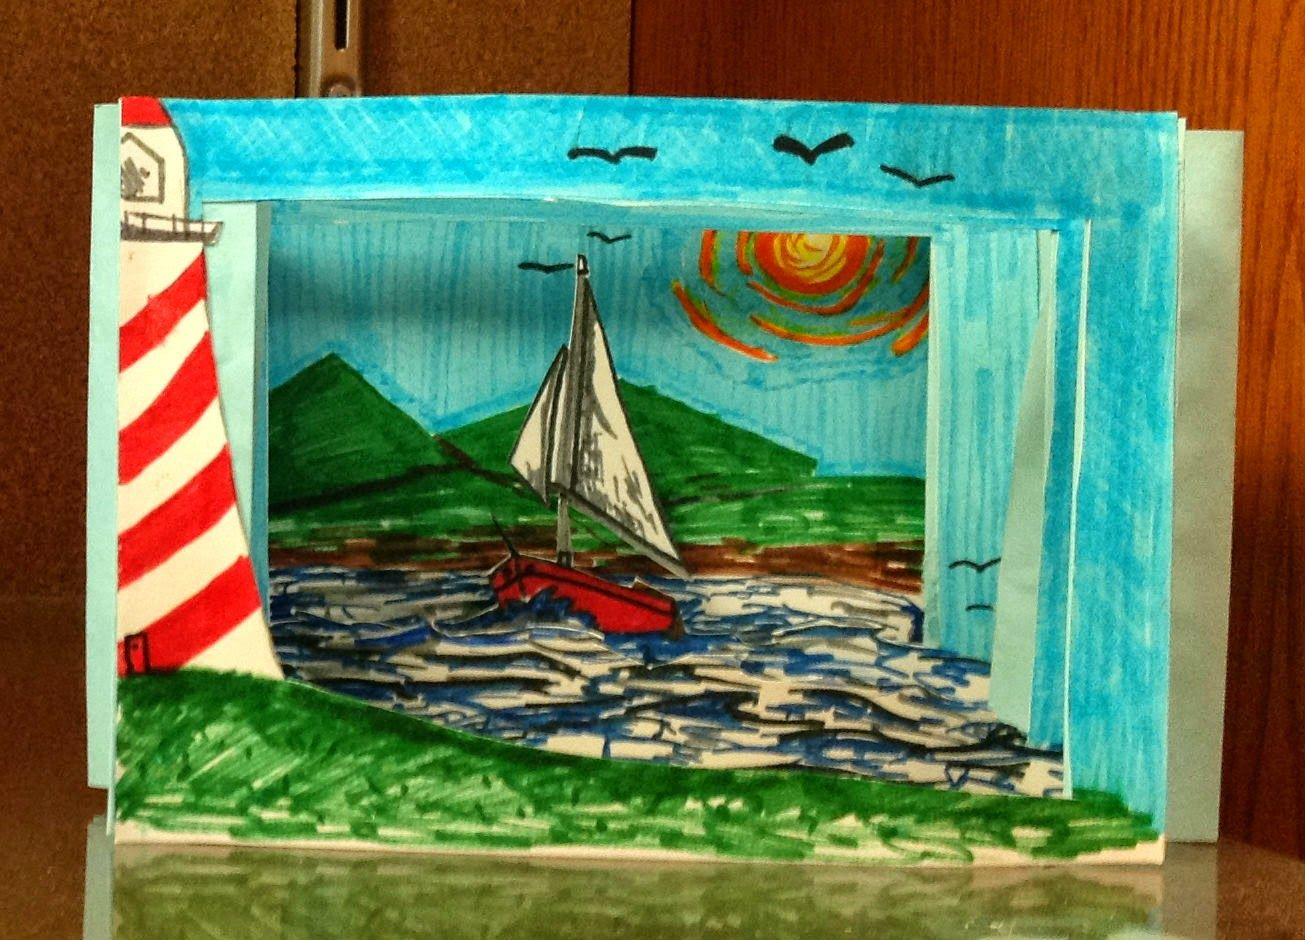 8th Grade Middle School Tunnel Book Art Lesson Book Art Projects Elementary Art 7th Grade Art